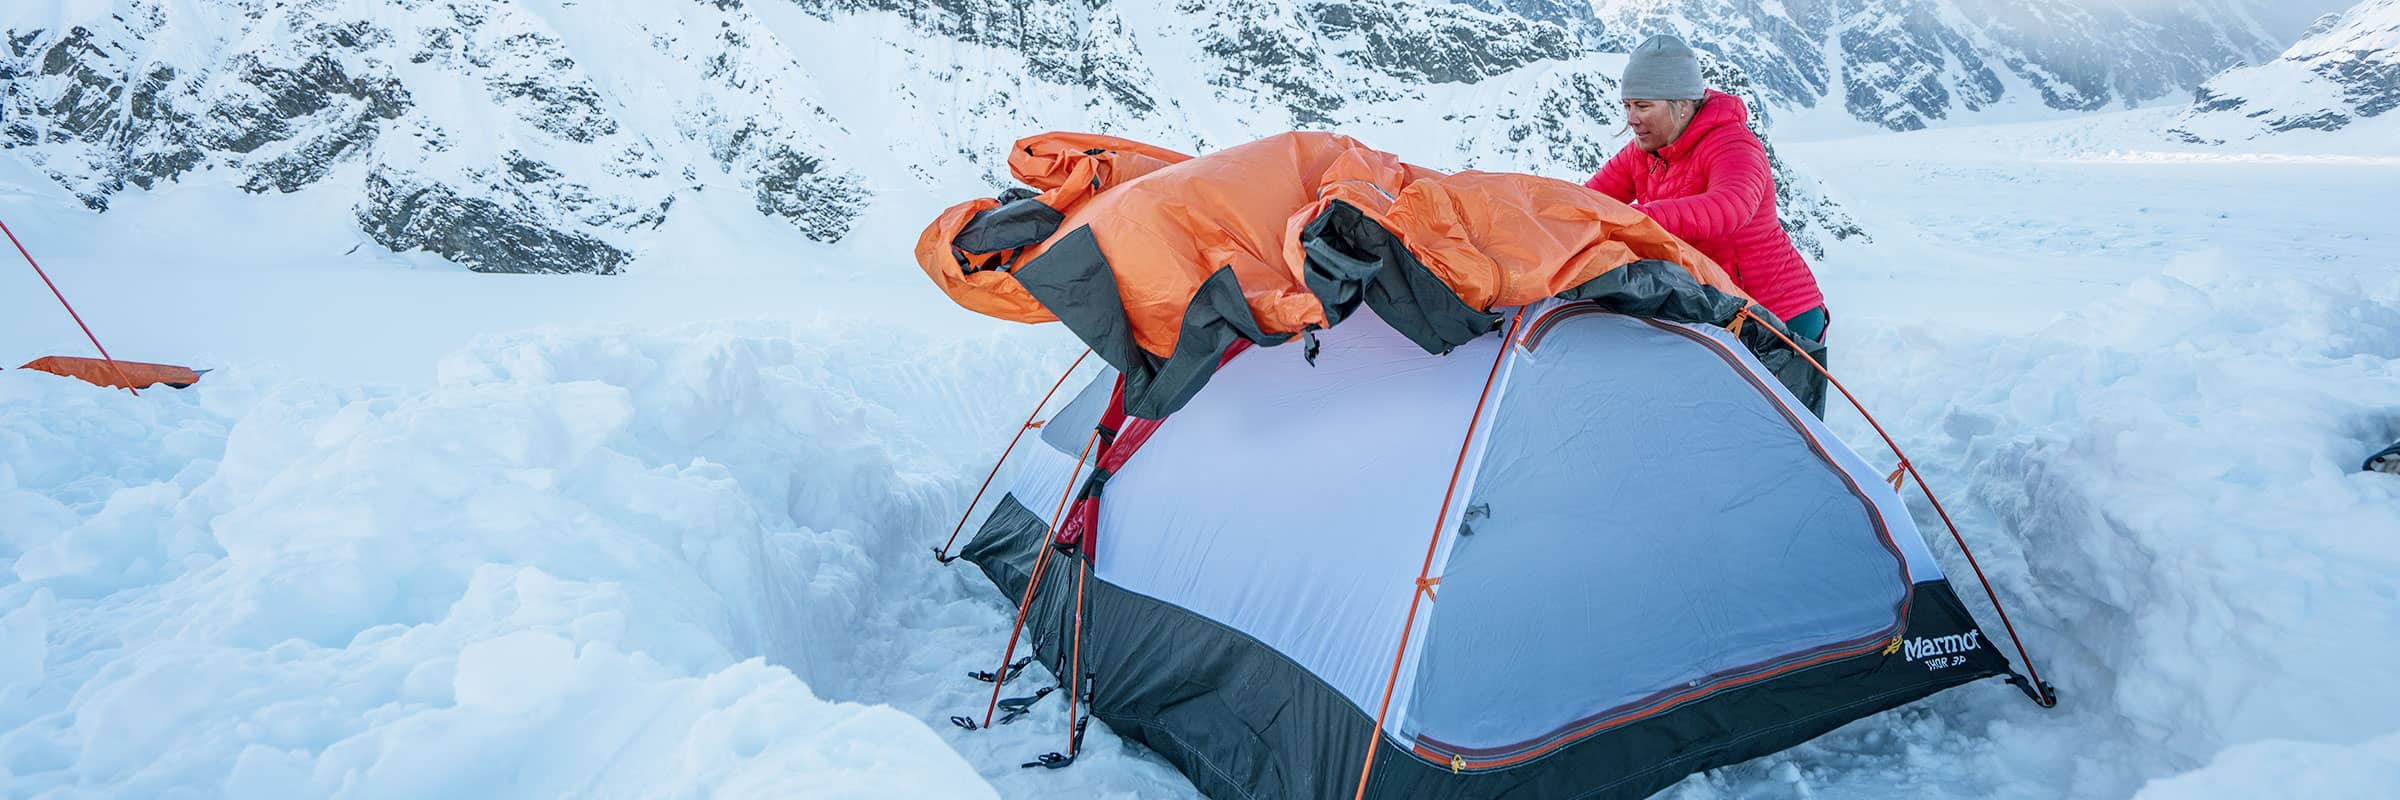 Marmot's Warmest Sleeping Bags